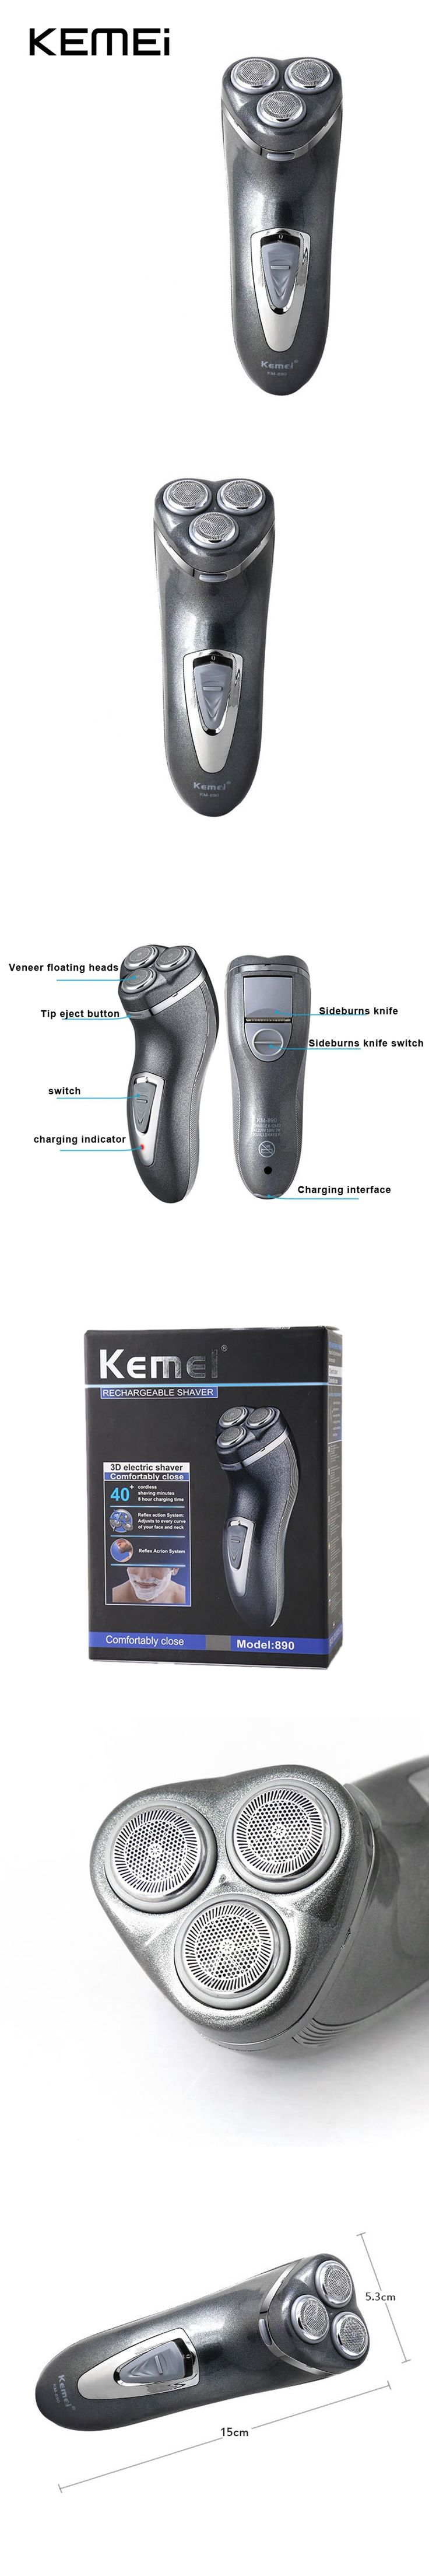 KEMEI KM-890 3D Floating Head Rechargeable Electric Shaver for Men Nose Beard Trimmer Shaving Razor Barbeador Rasoir Electrique